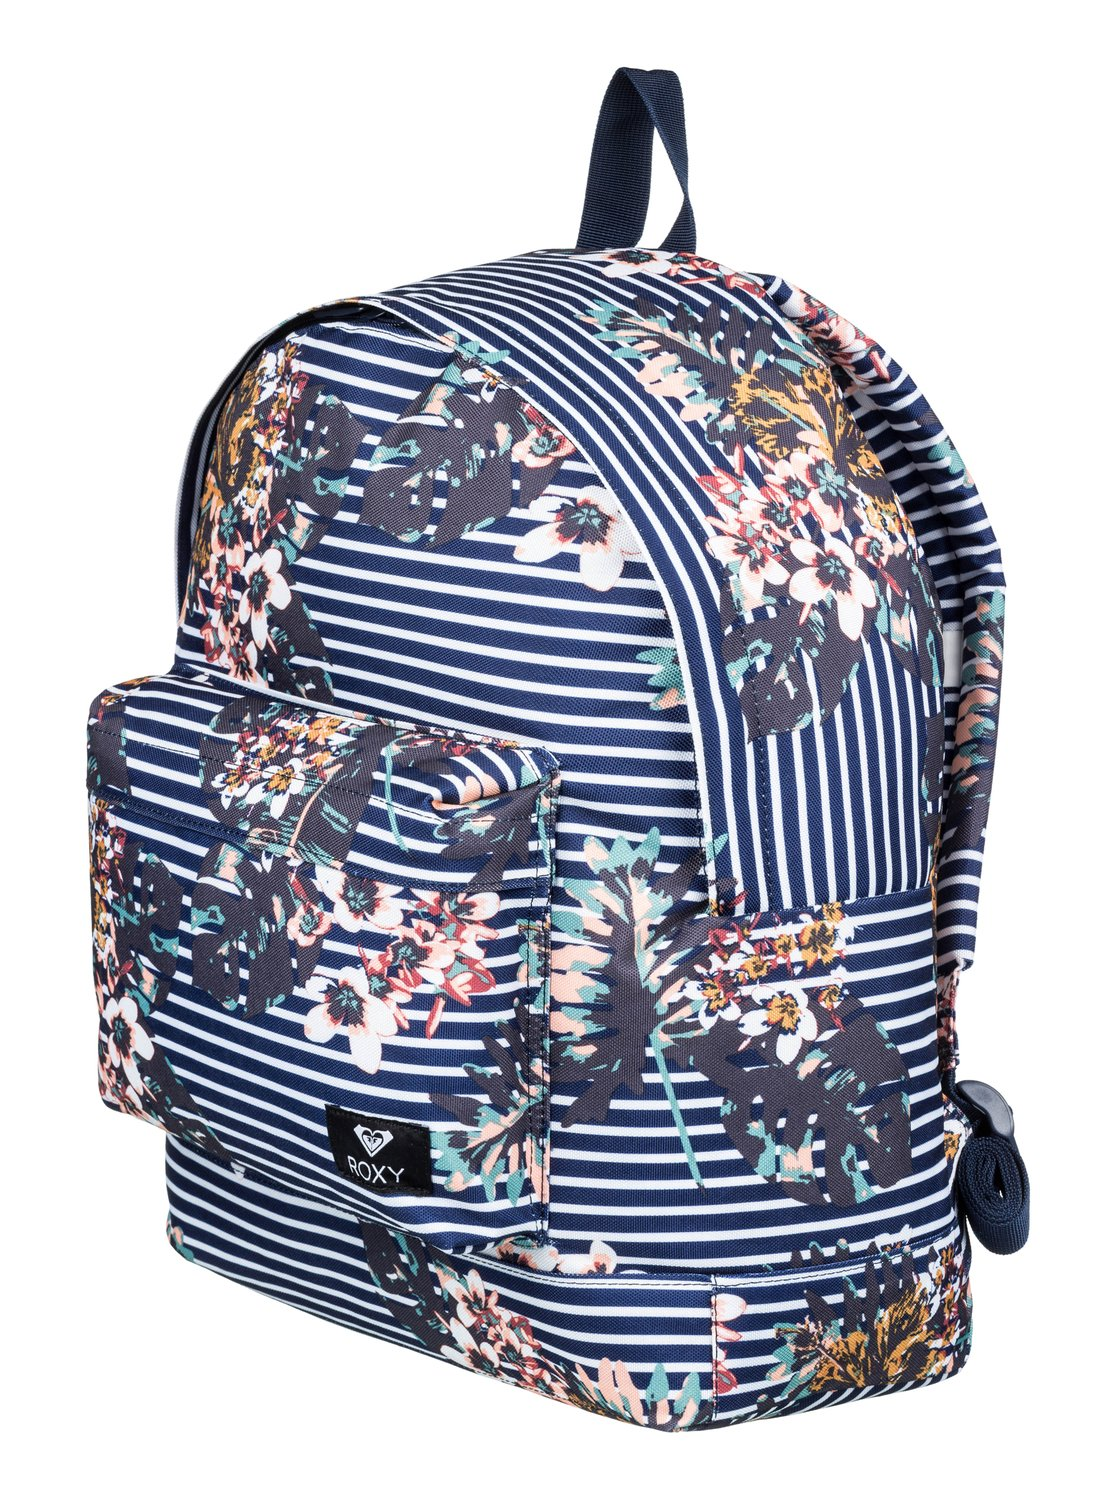 Roxy™ Be Young 24L Medium Backpack ERJBP03732